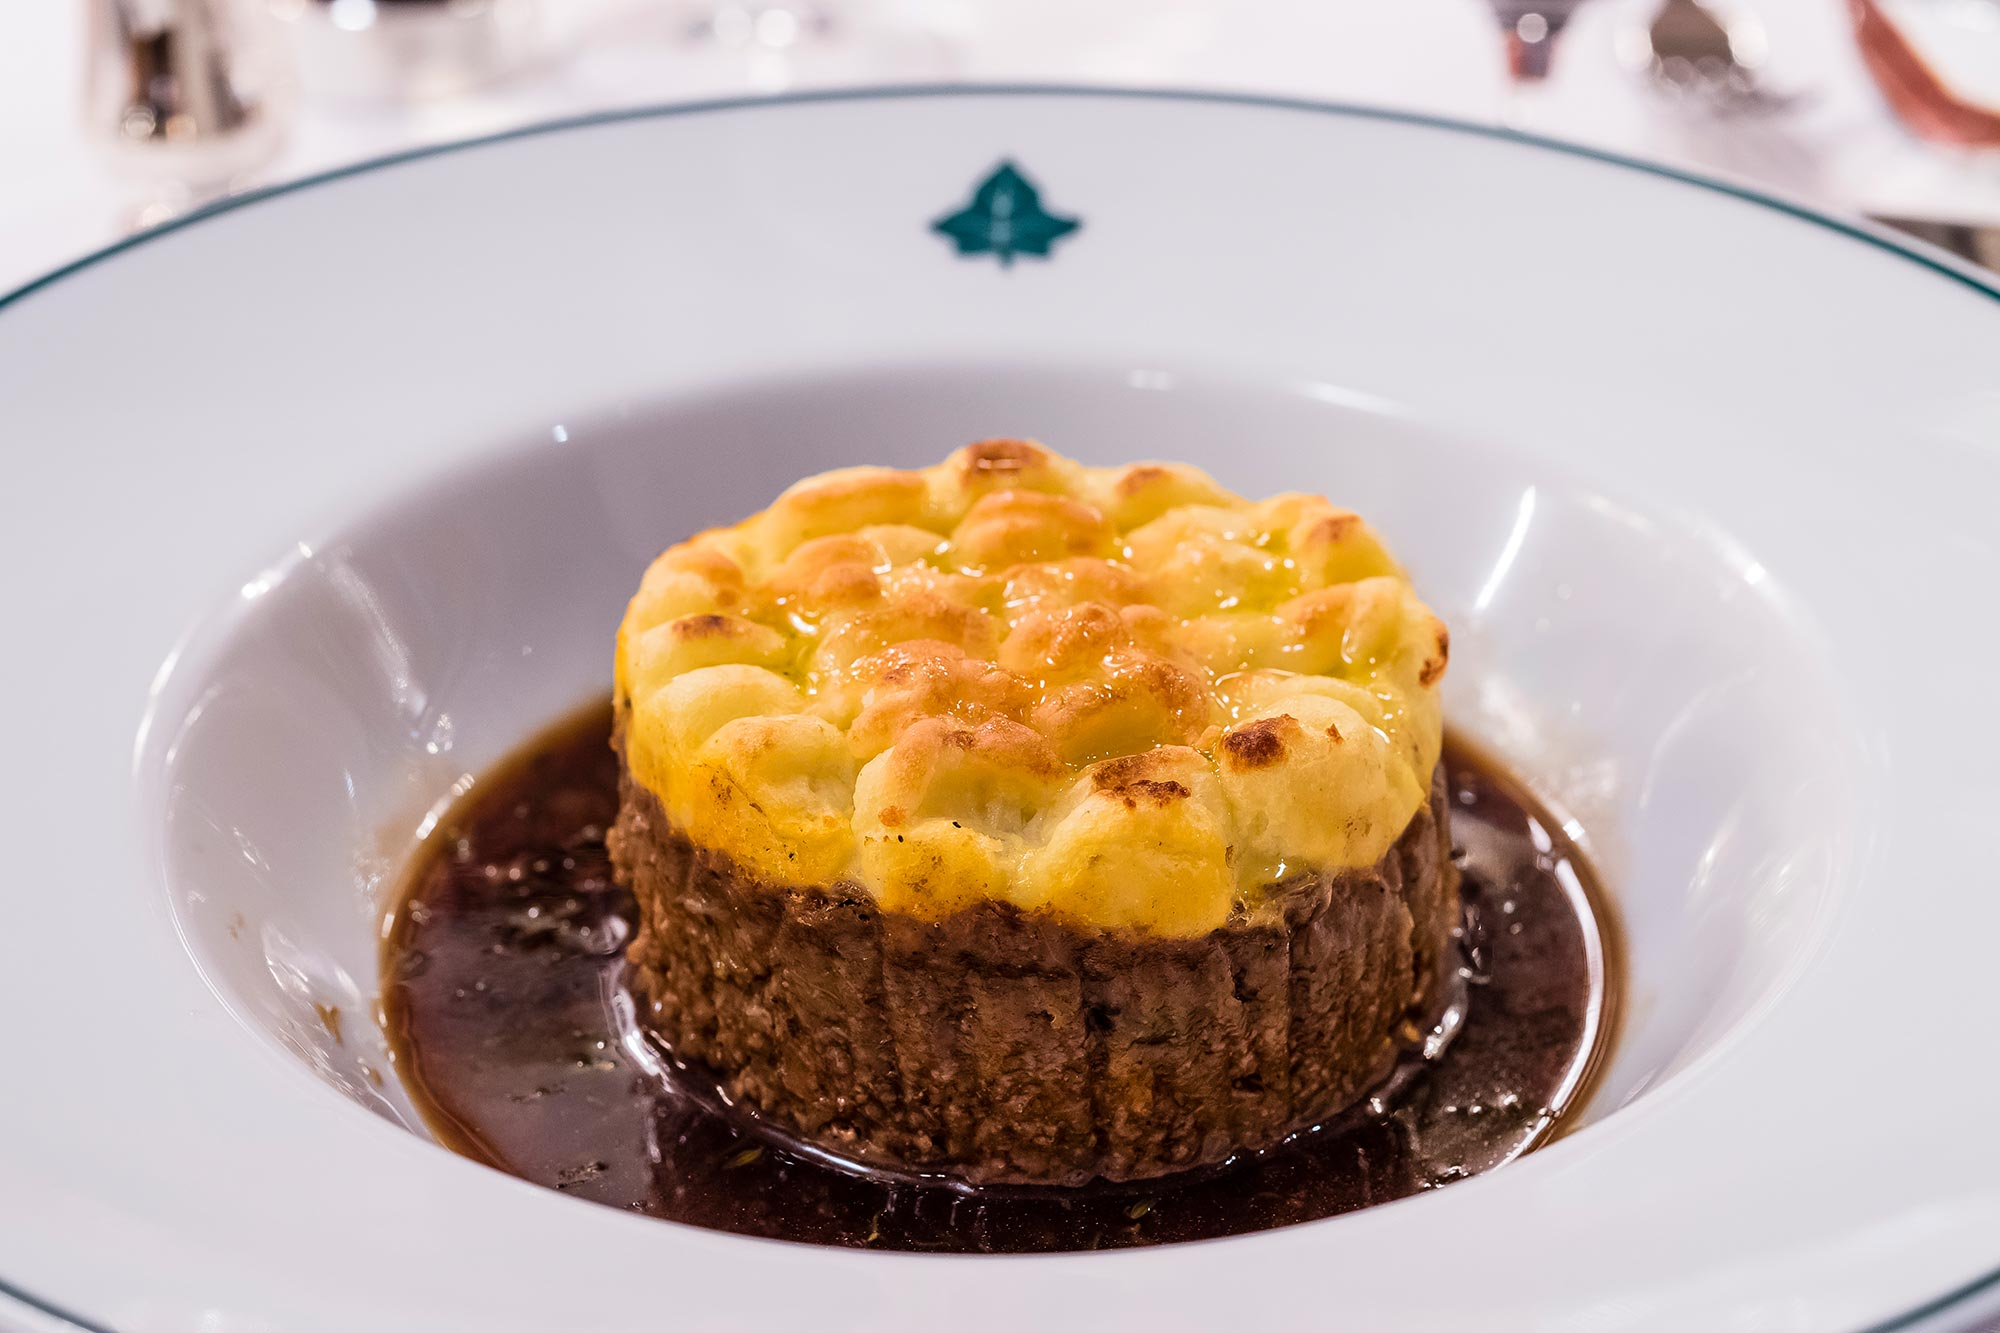 Dining out in Bath, The Ivy Bath Brasserie - Shepherd's Pie - The Ivy Bath Brasserie